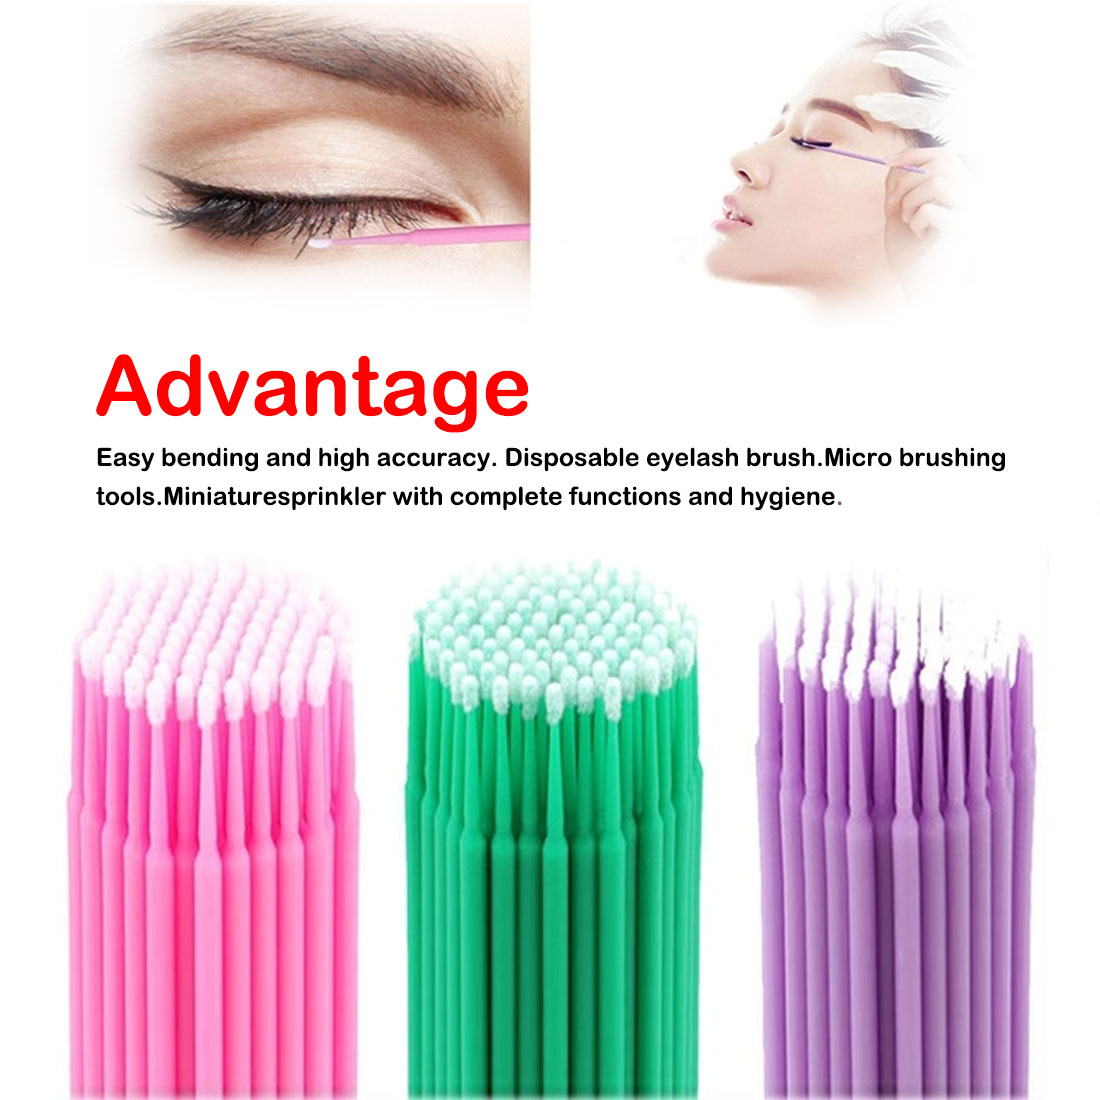 100Pcs/Bottle Durable Micro Disposable Micro Brush Individual Lash Removing Tools Swab Eyelash Extension Tools